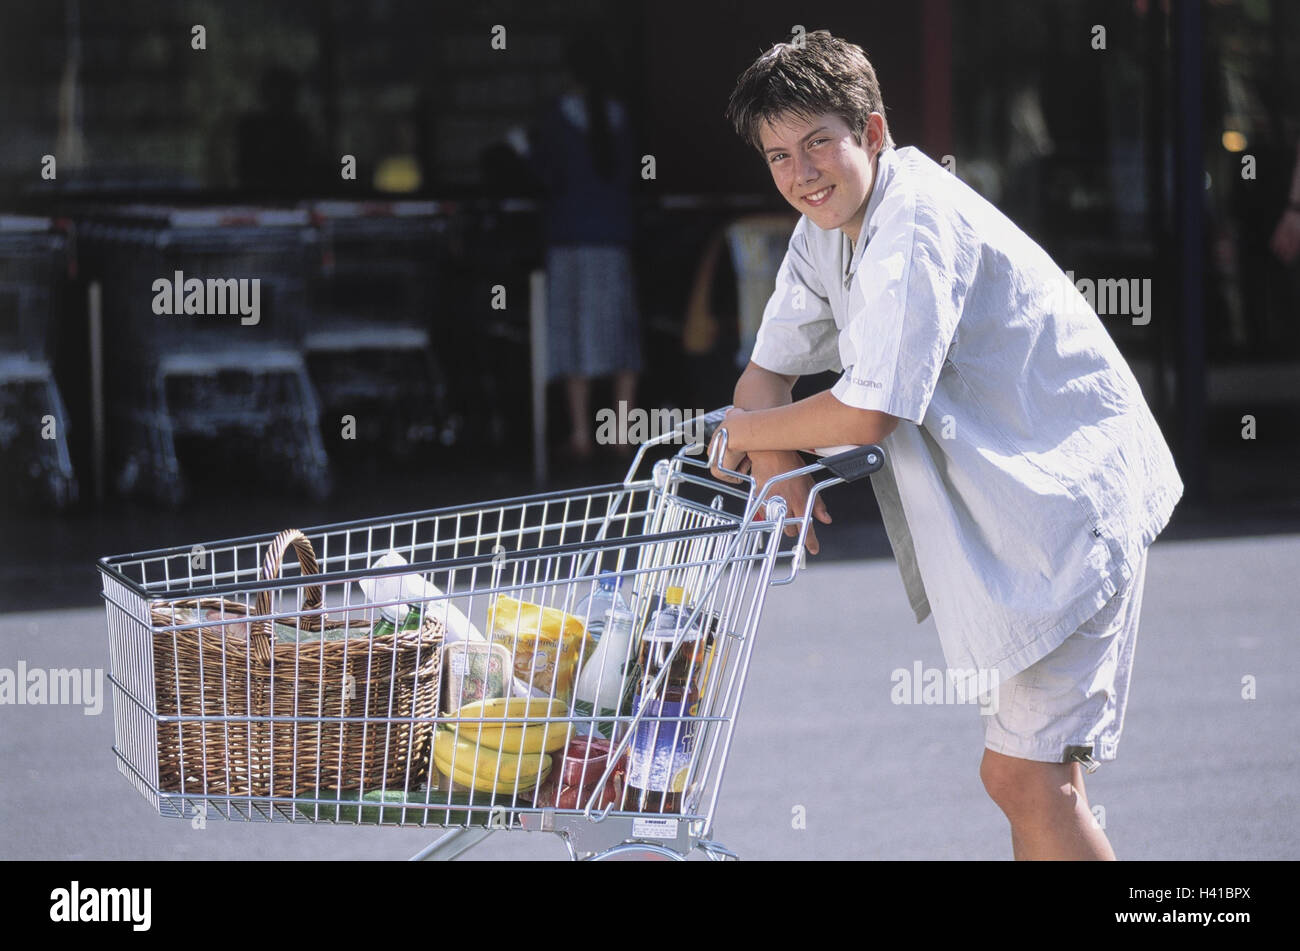 boy shopping shopping carts outside child young person teenager teenagers boy schoolboy leisure time holidays school end work job work work